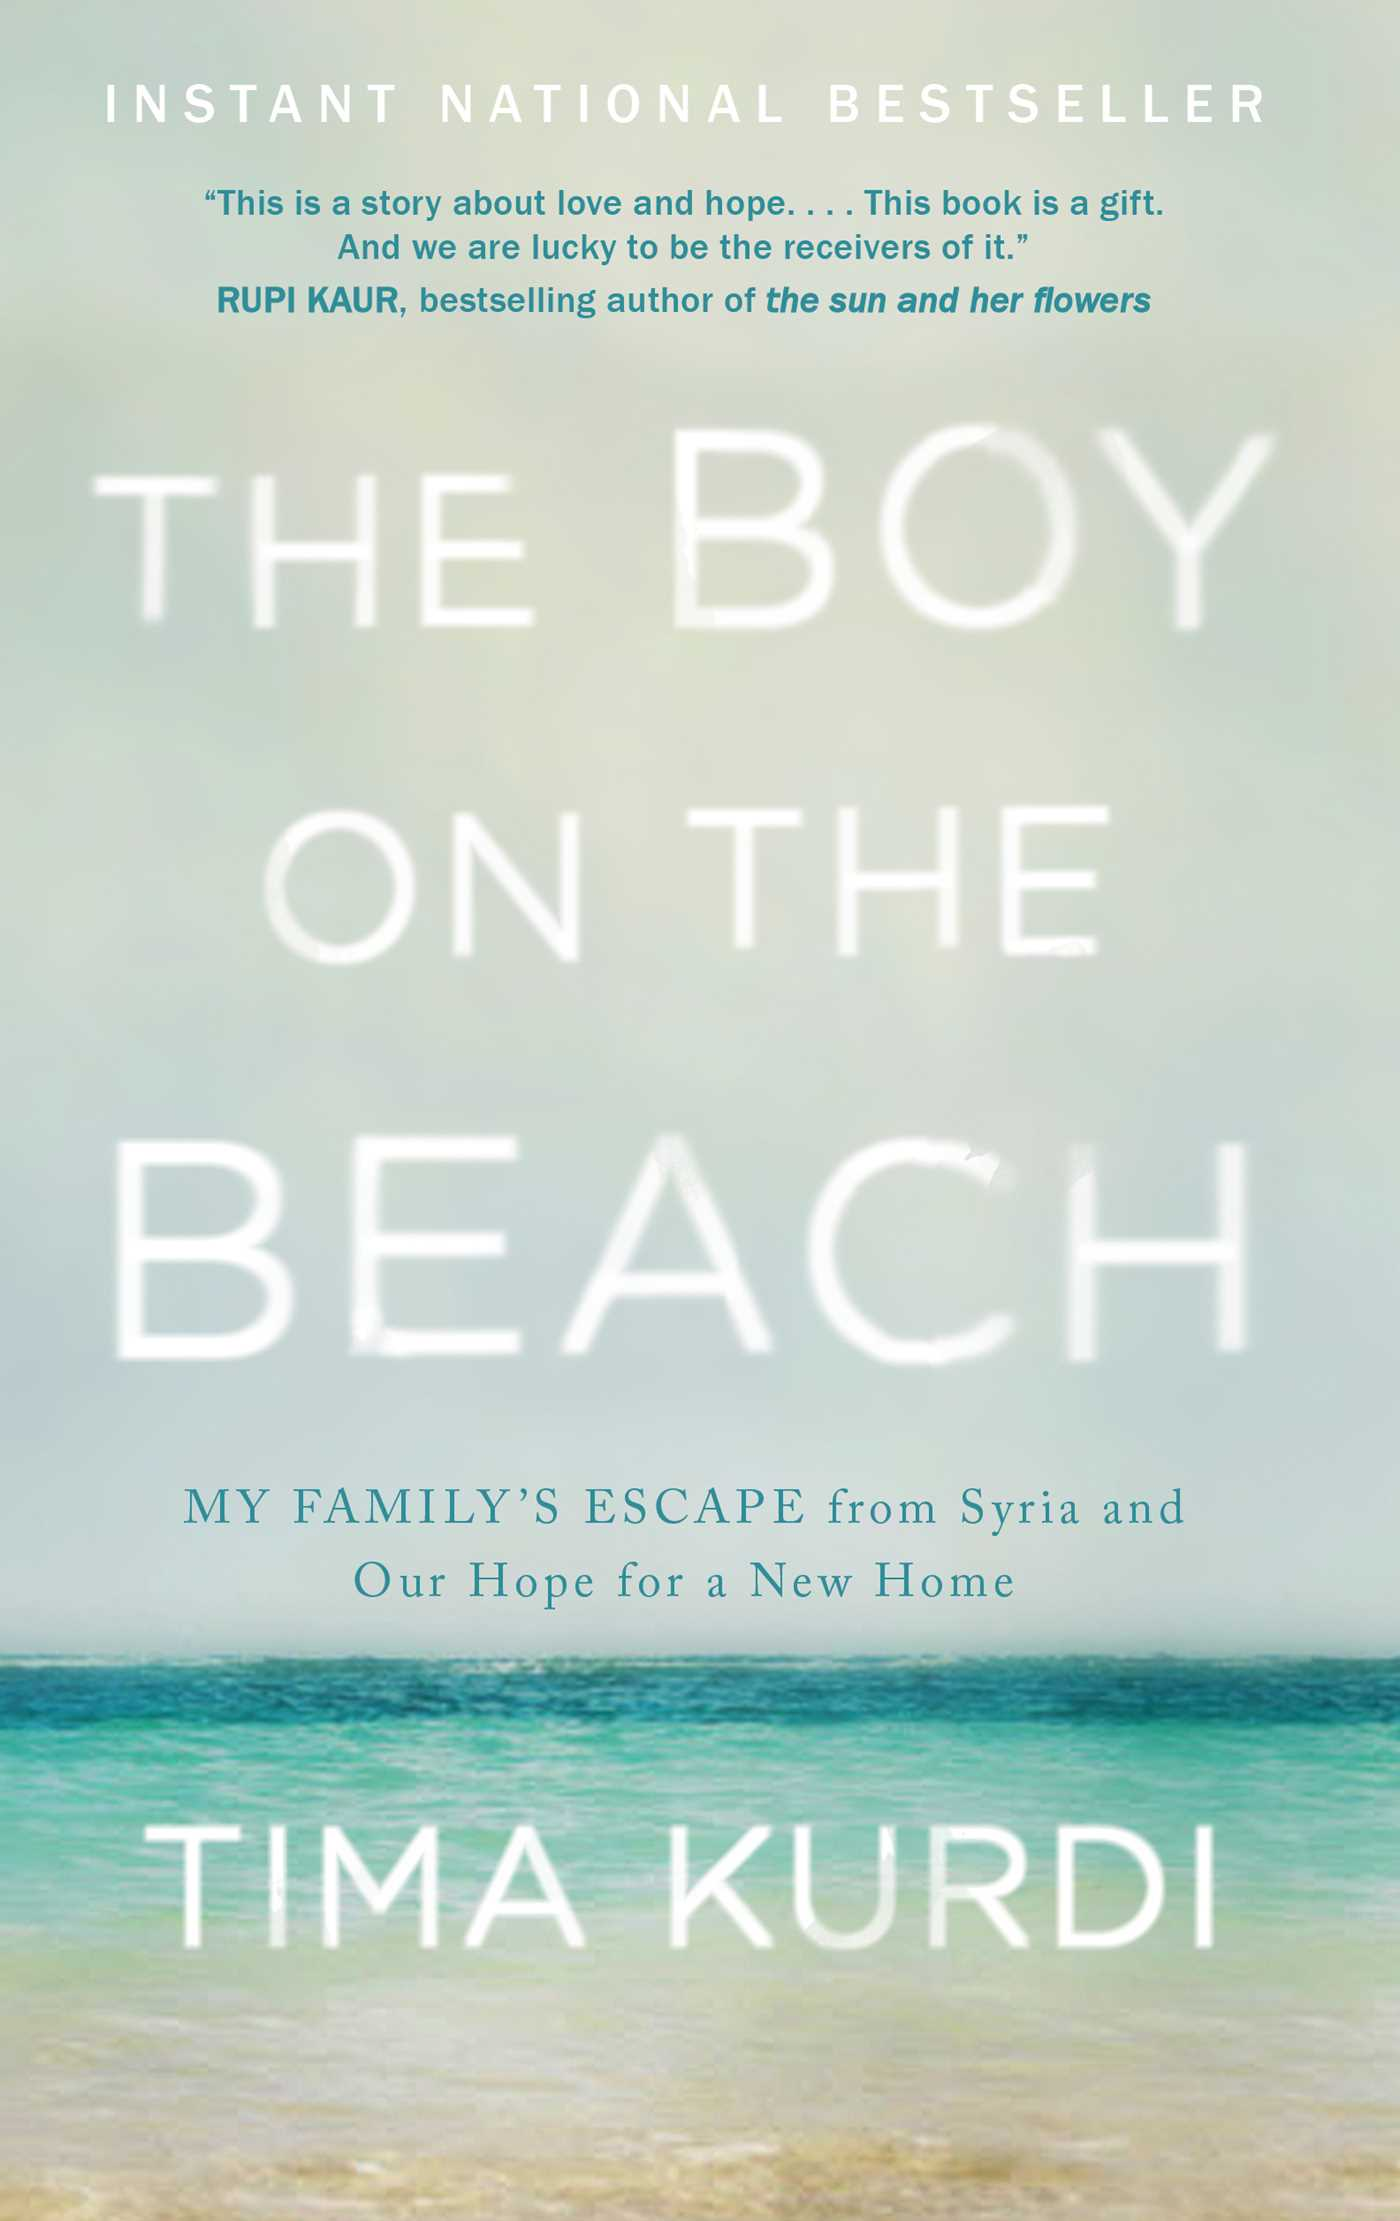 cover image of the book, the boy on the beach, showing sky, water and sand